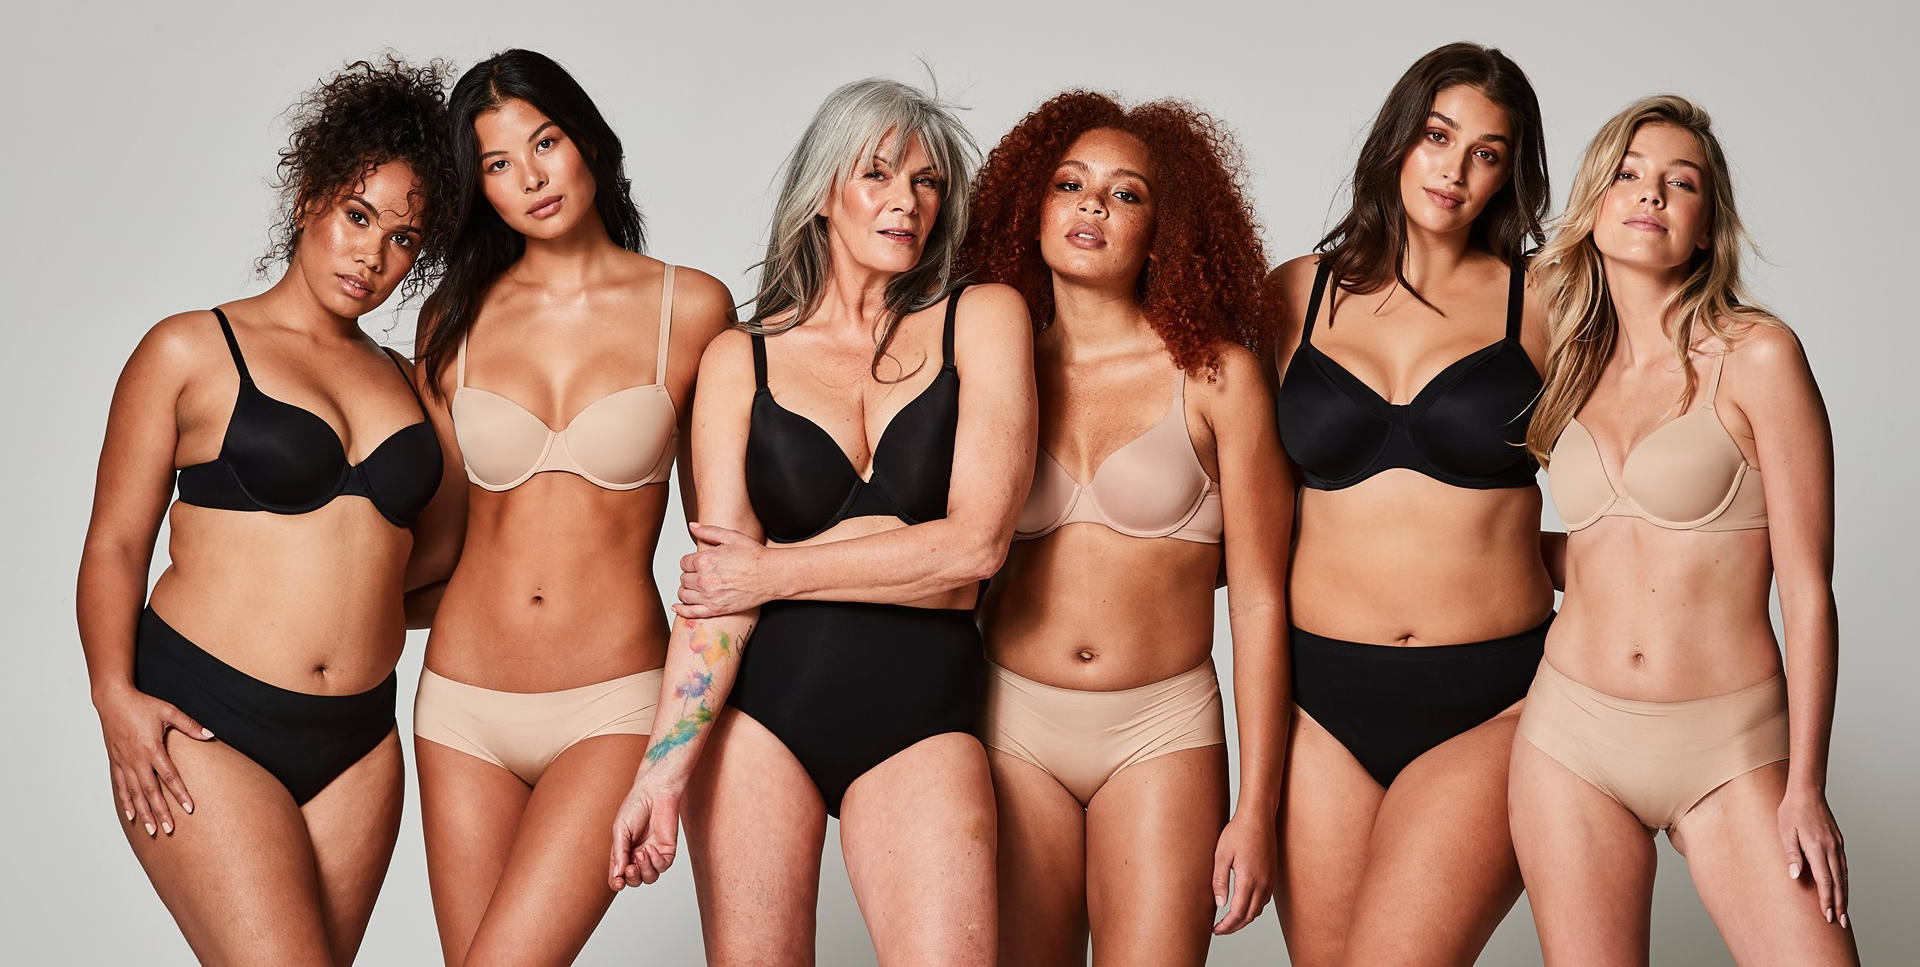 target everyday bra campaign image: hannah spence